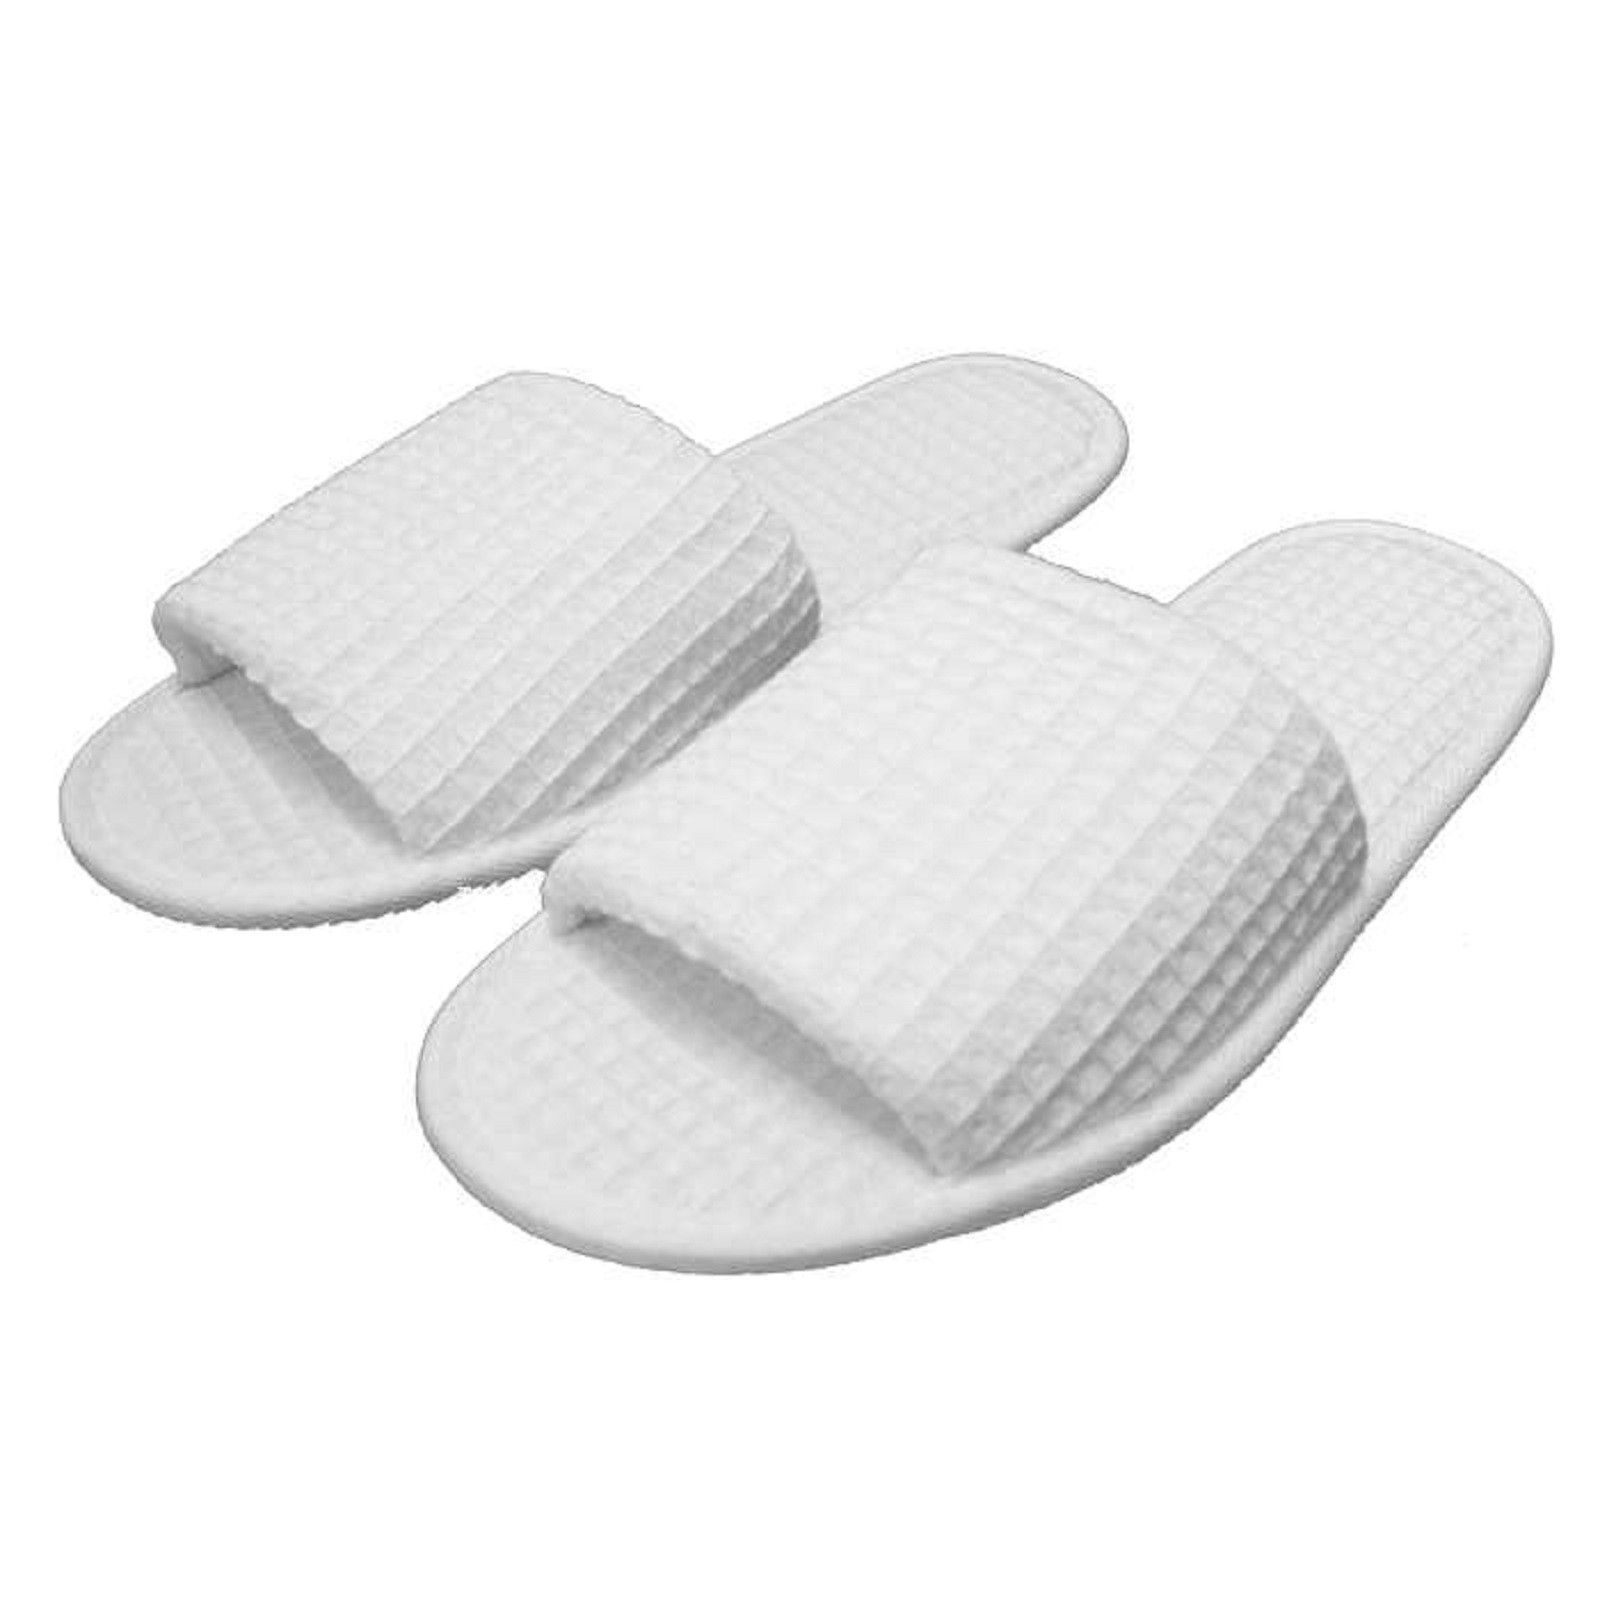 459044eb687228 PAIR OF WAFFLE OPEN TOE SLIPPERS - ONE SIZE FITS MOST - AVAILABLE IN 5  COLORS